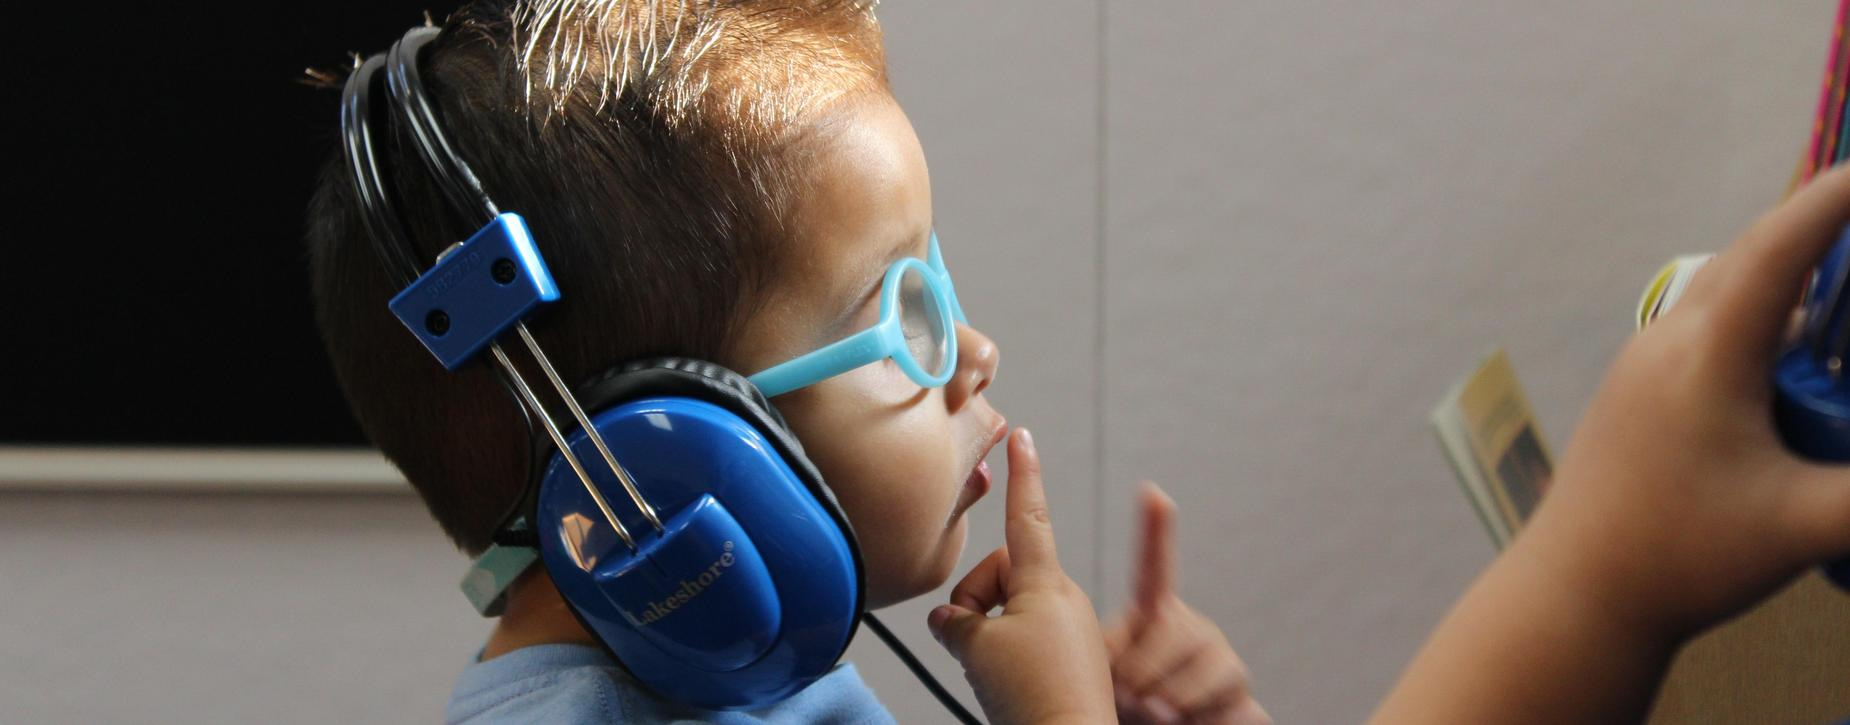 Boy with headset thinking